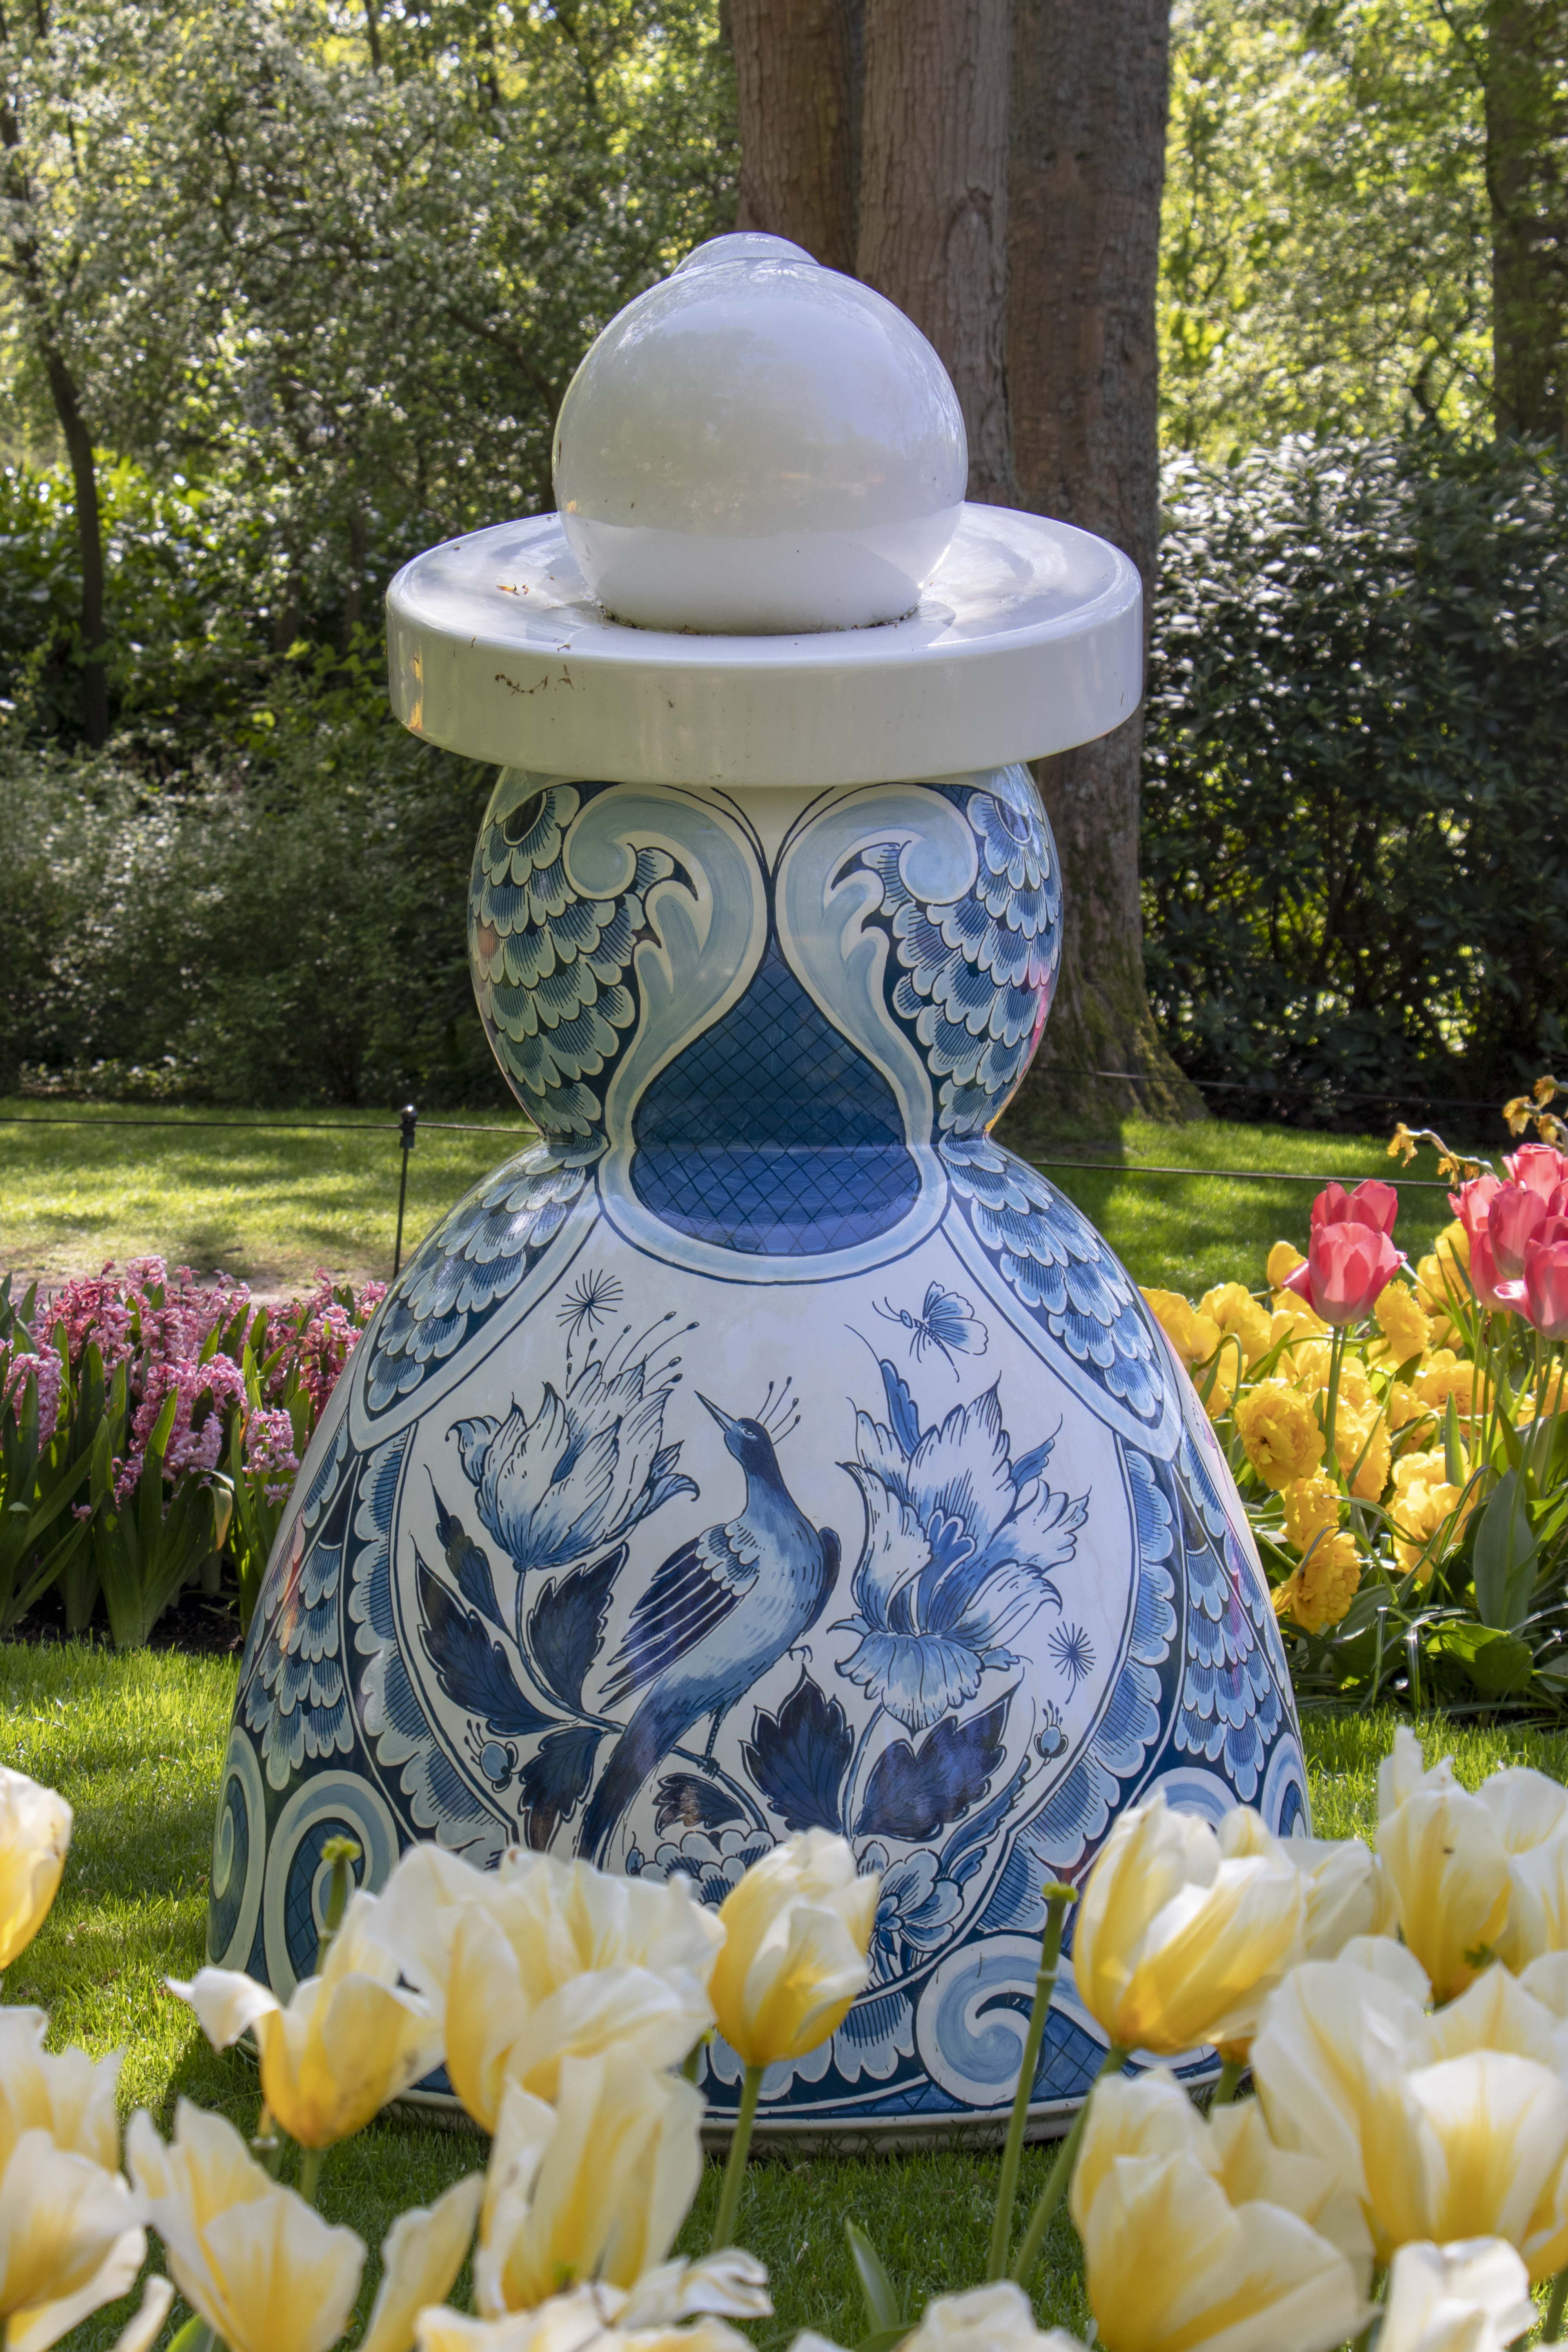 Royal Delft - Proud Mary statue at Keukenhof, Lisse, Netherlands